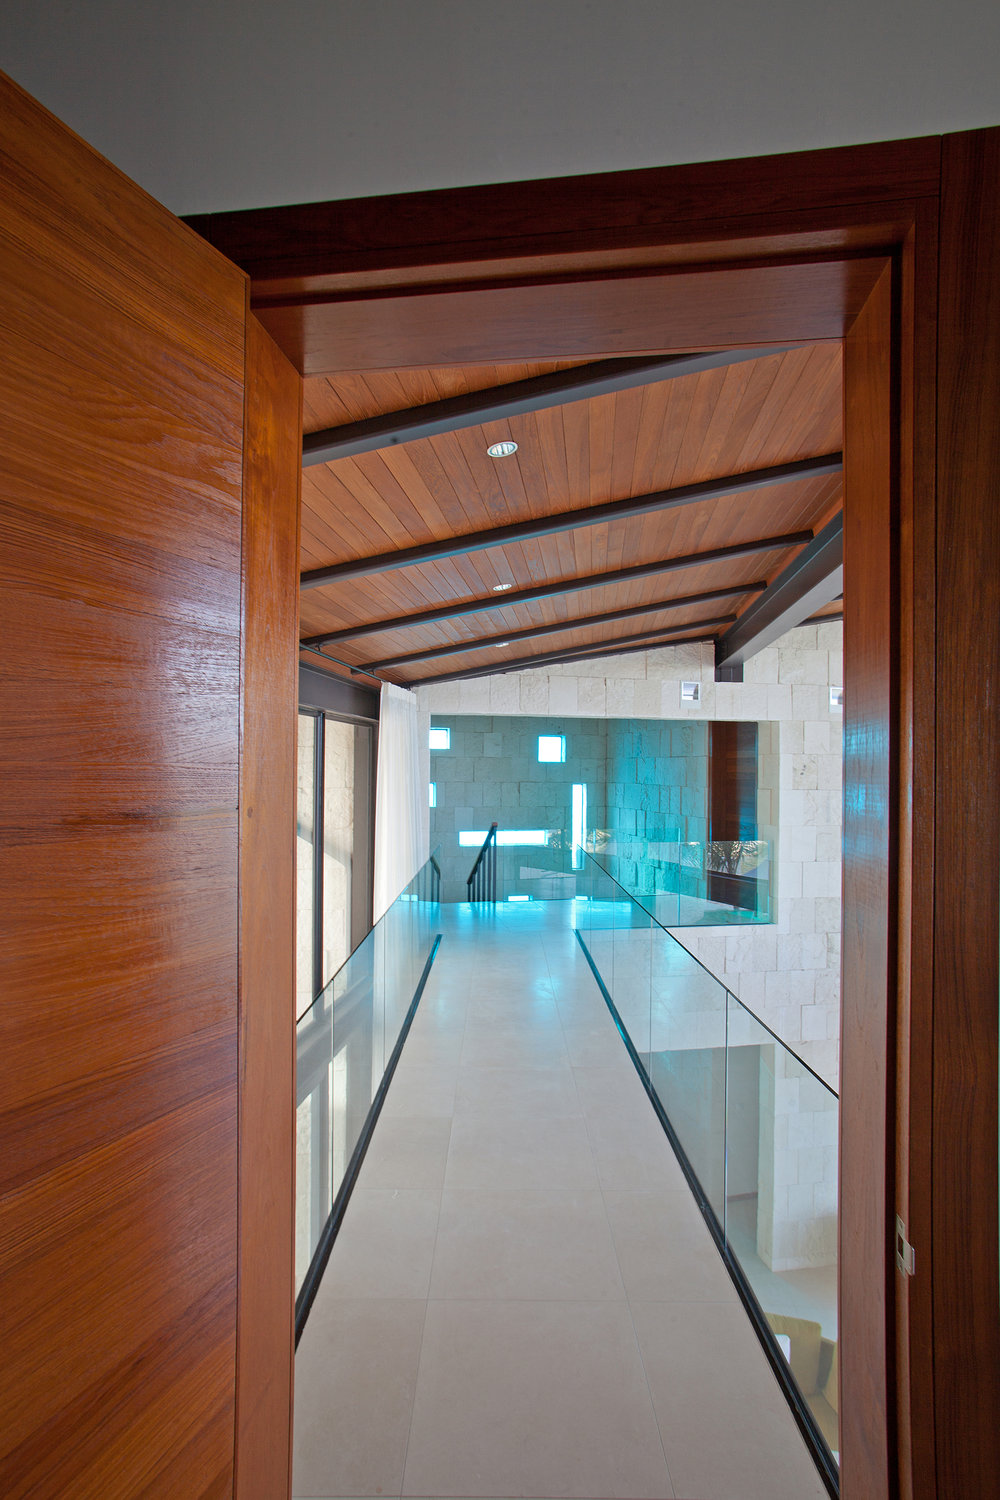 Bonaire Residence by Silberstein Architects Photo by Robin Hill (c) HI RES (68).jpg